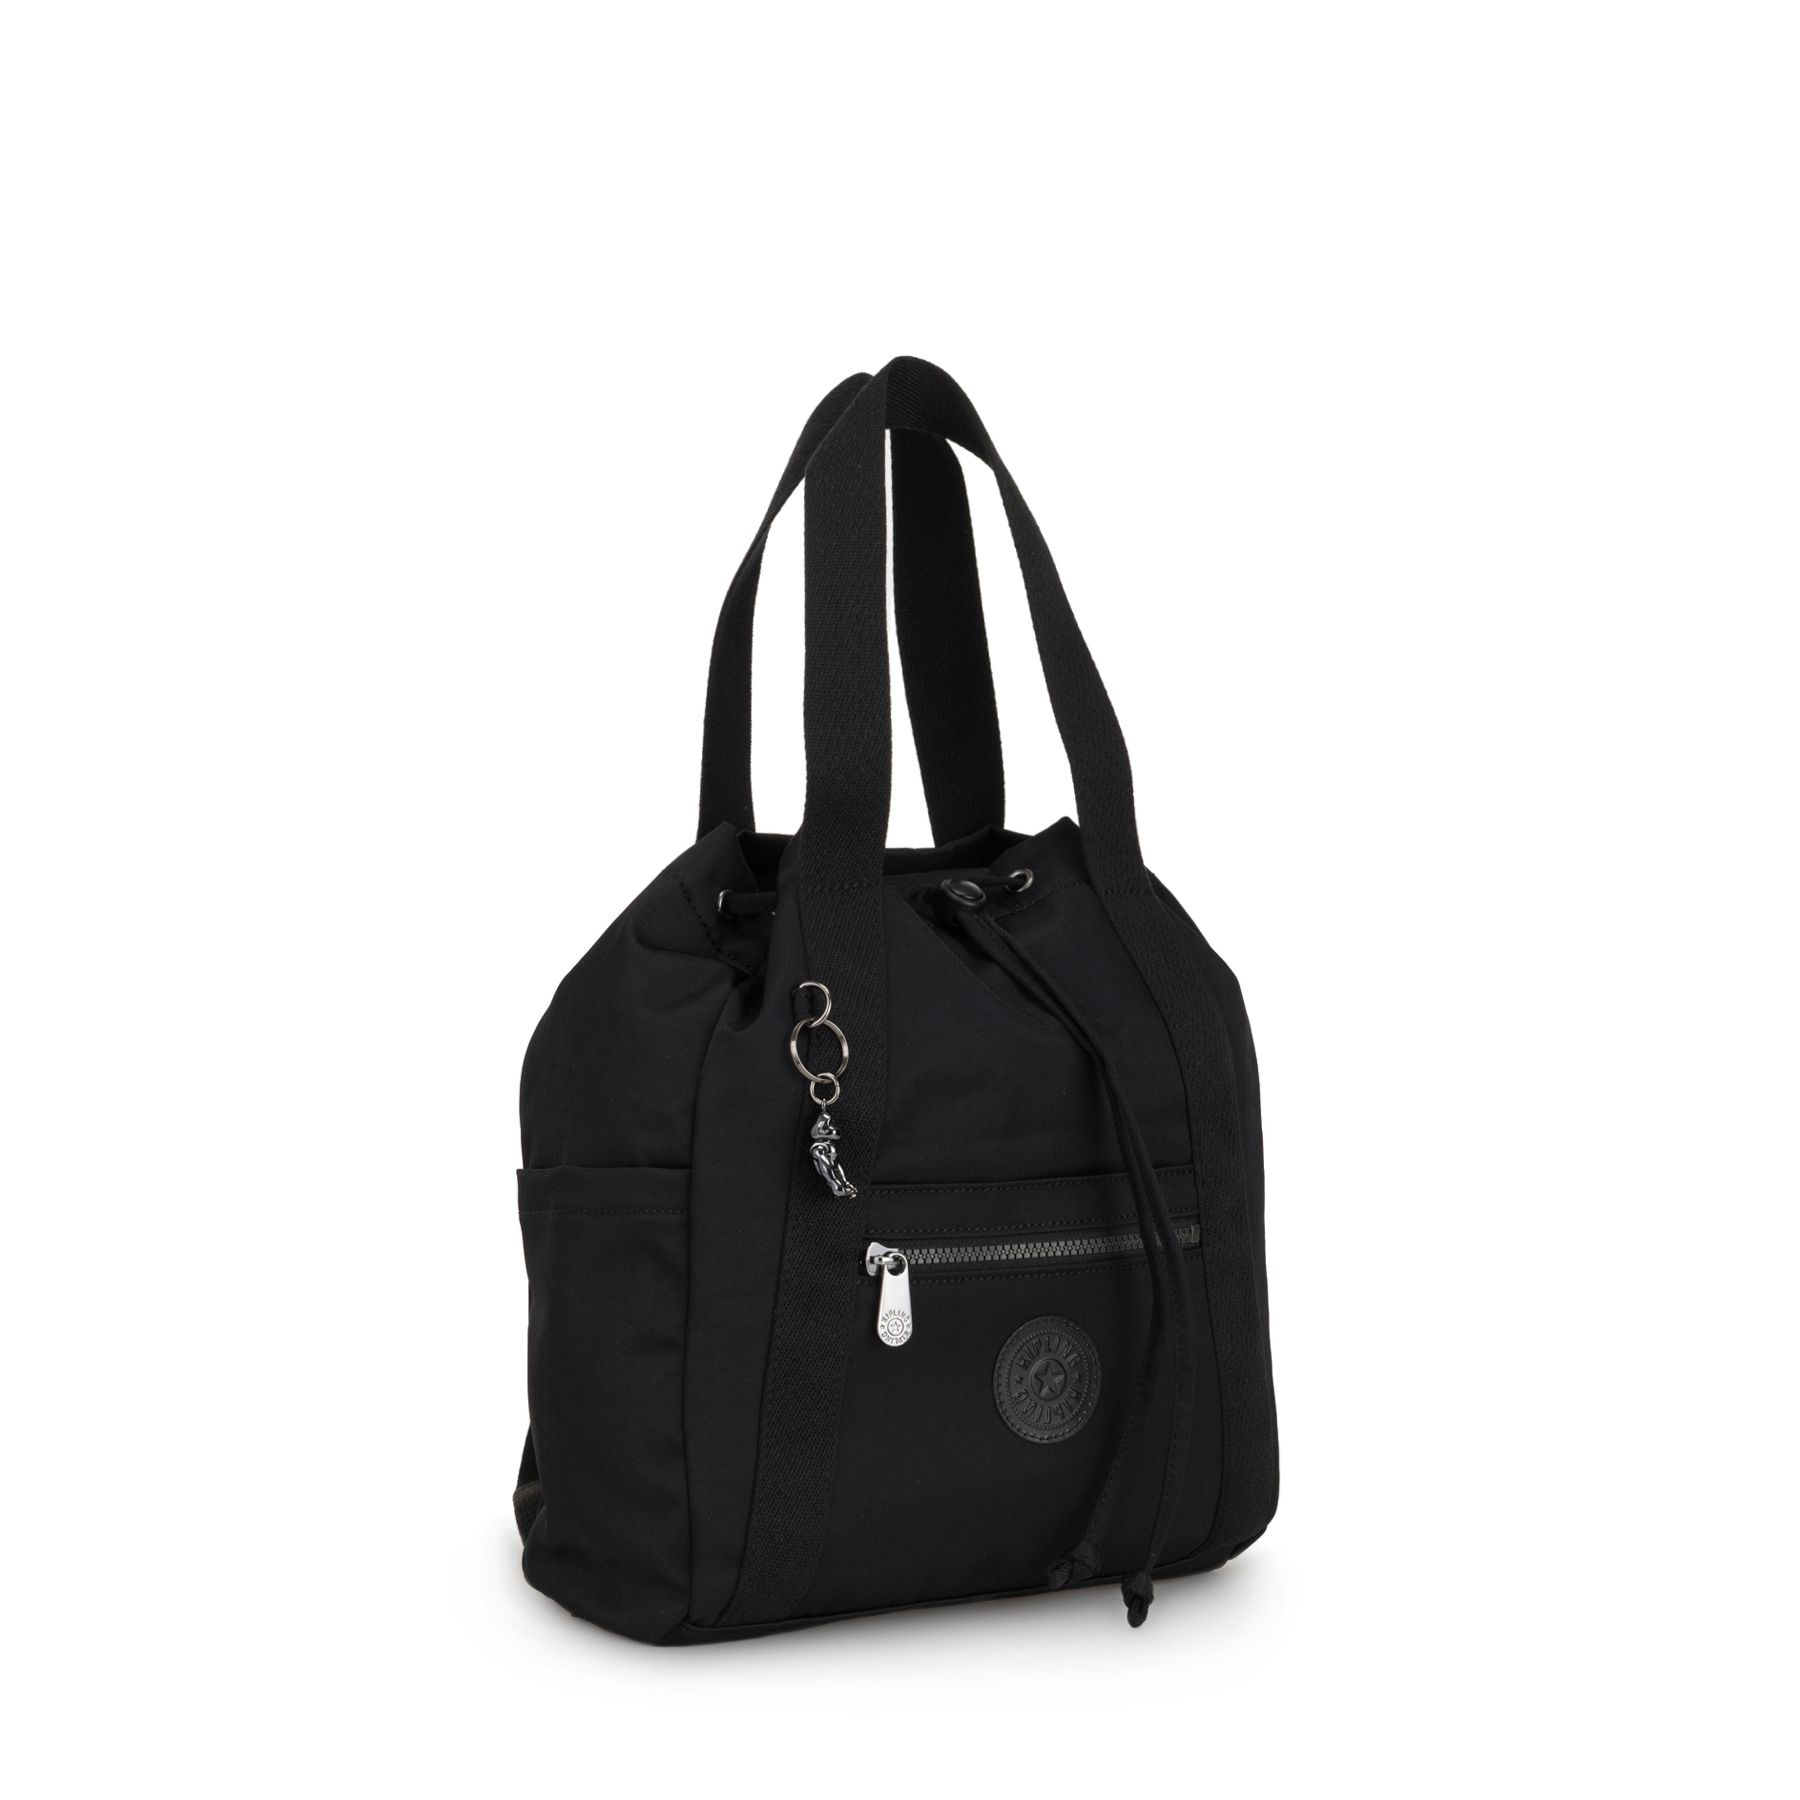 ART BACKPACK S BACKPACKS by Kipling - view 4